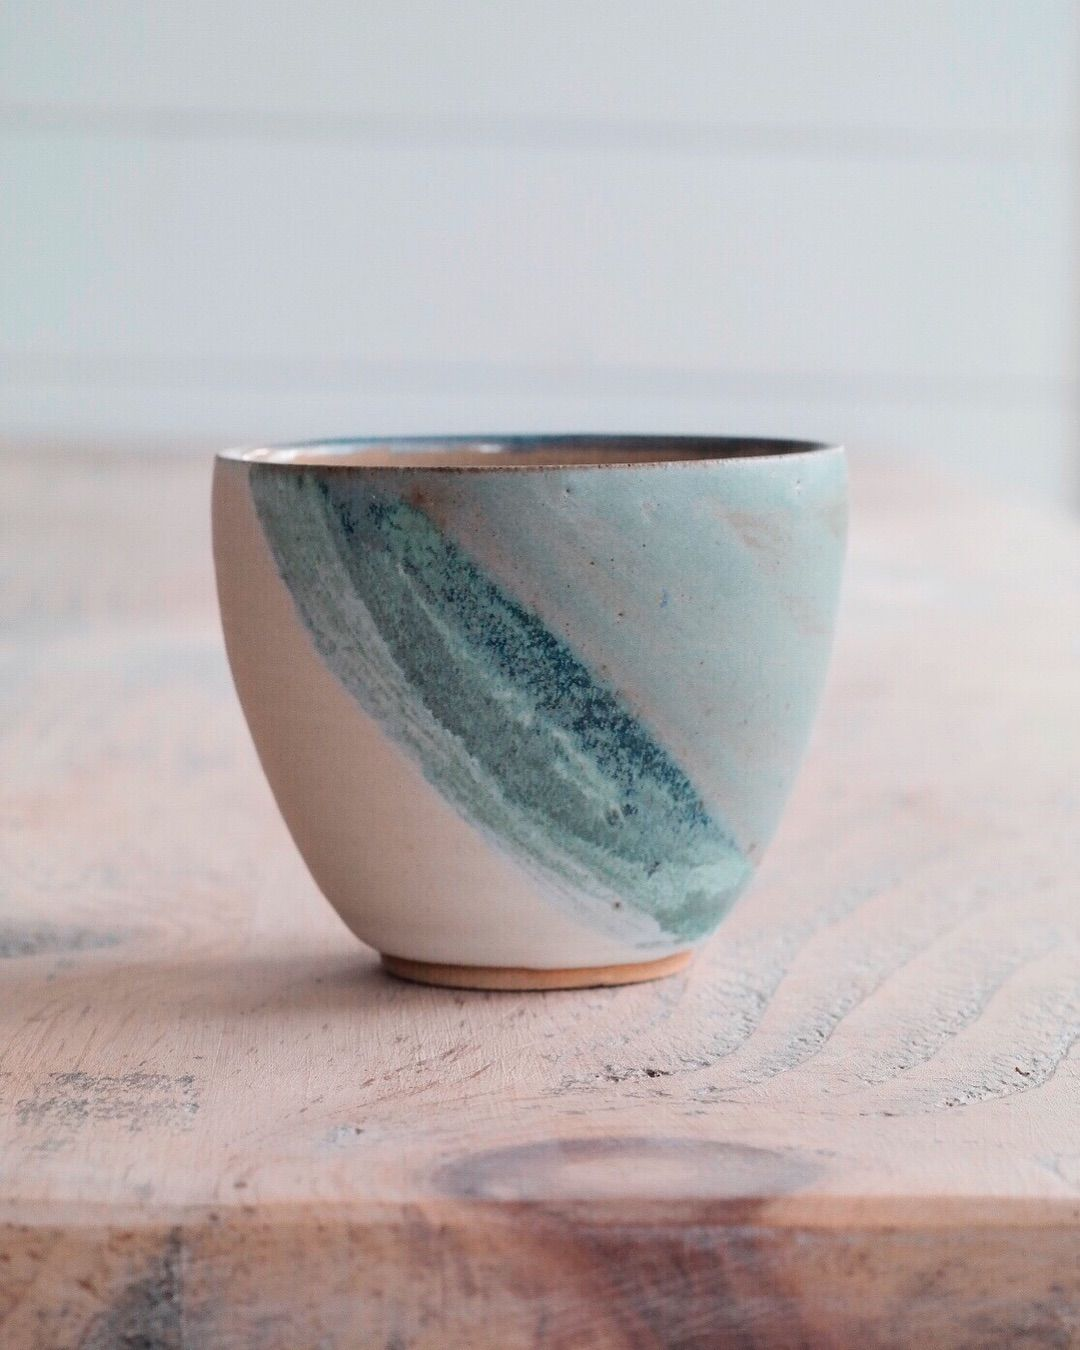 Kara Leigh Ford Pottery On Instagram March Shop Update Is Now Live I Hope You Have Had A Peaceful Sunday Folks With Images Pottery Pottery Place Thrown Pottery